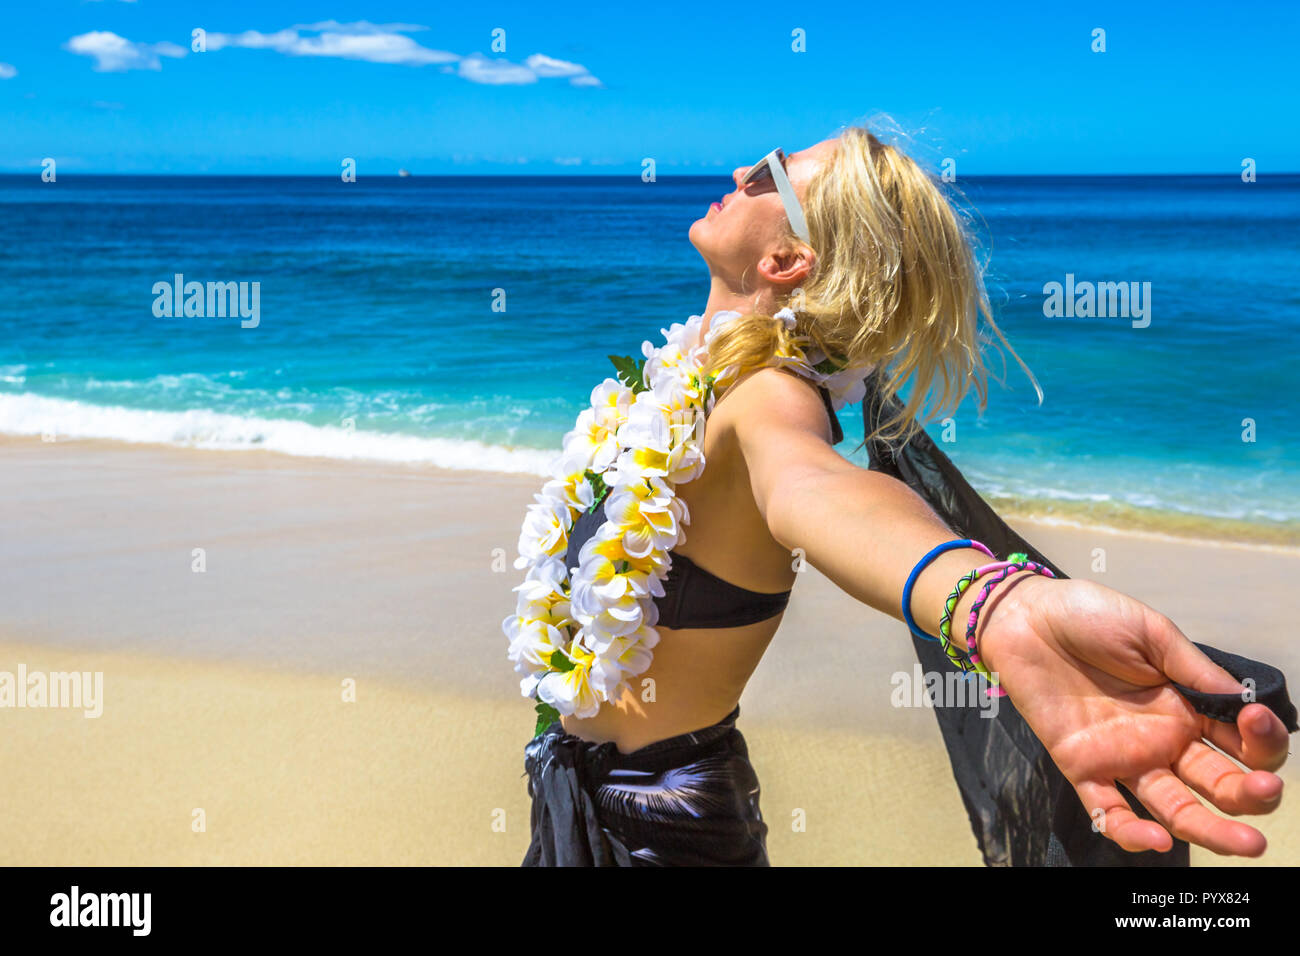 eb4b3dc82a0 Hawaiian Tropic Girl Stock Photos   Hawaiian Tropic Girl Stock ...